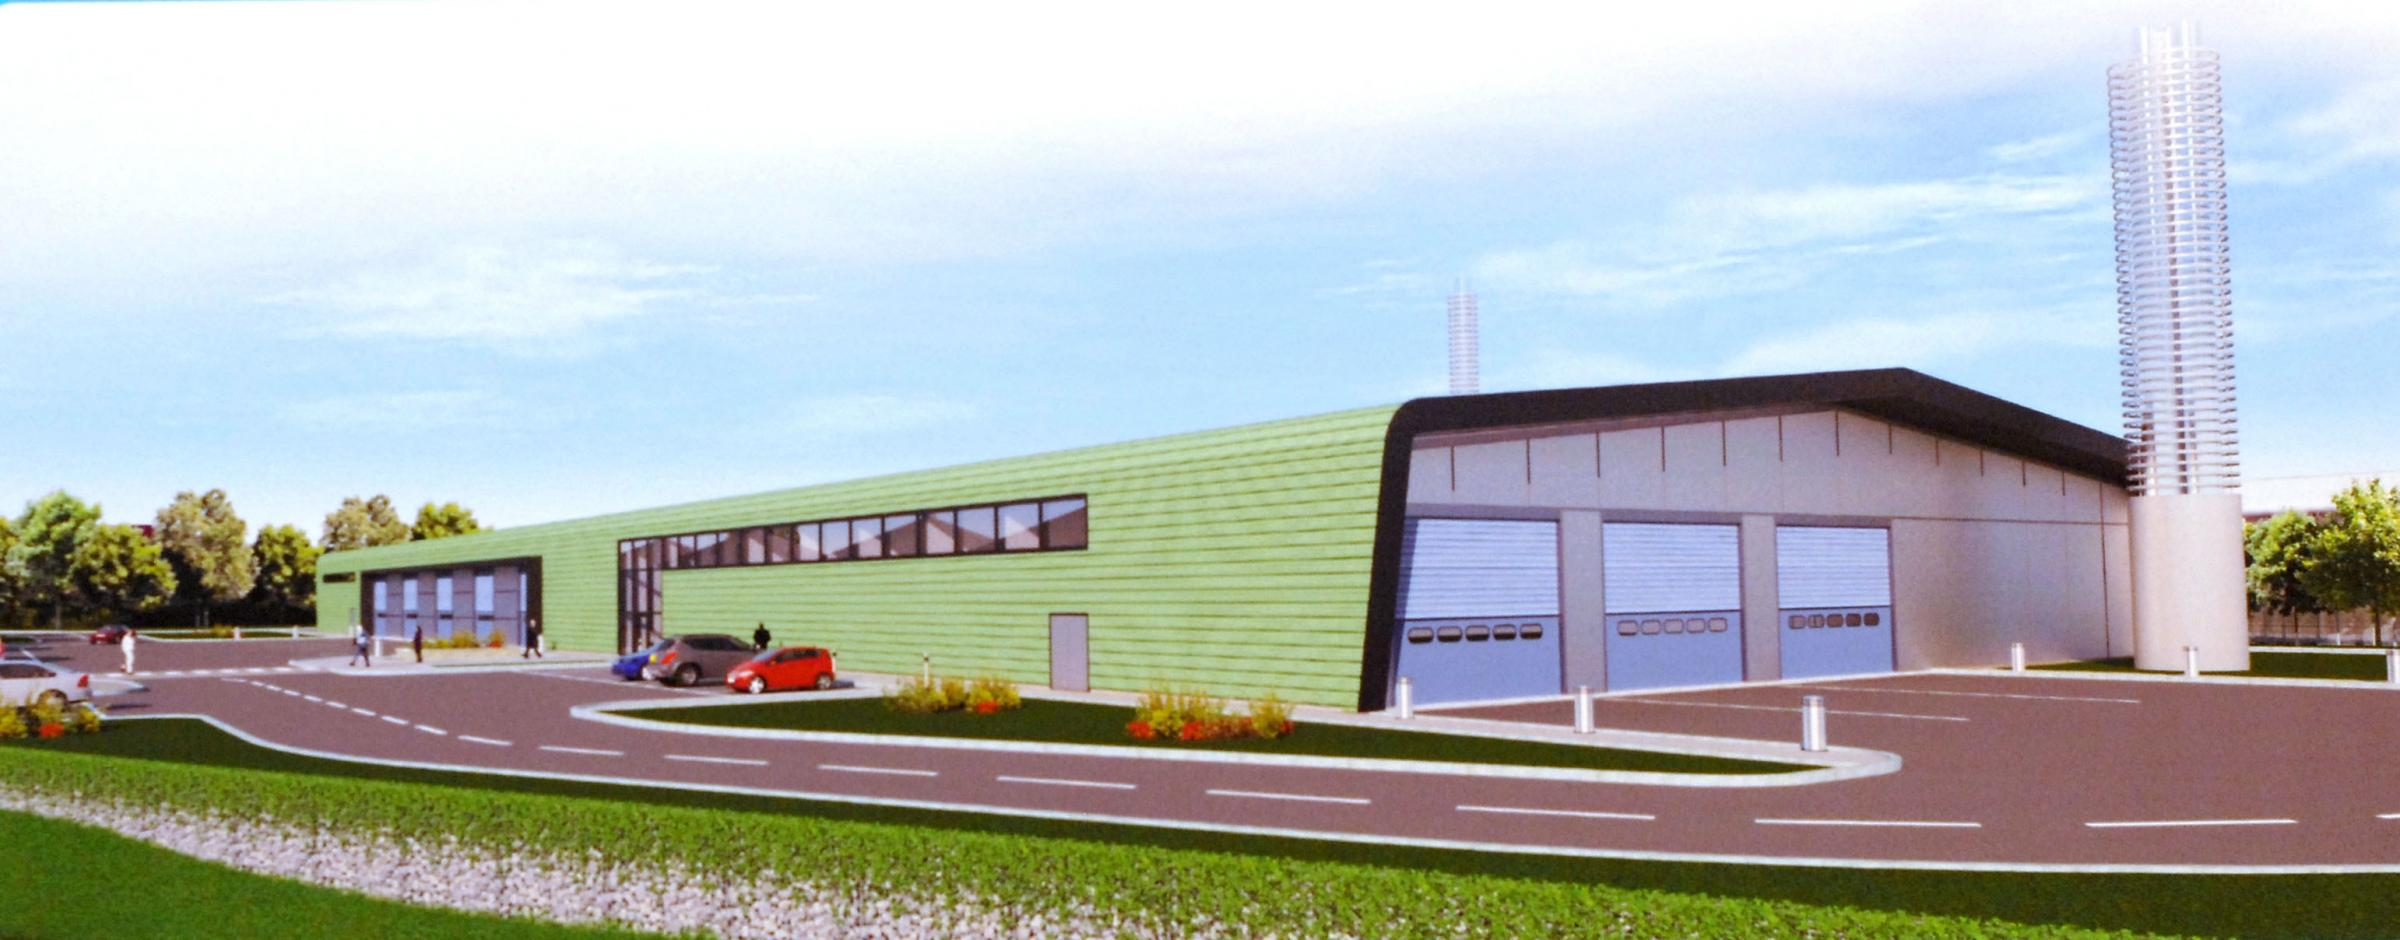 An artist's impression of the proposed recycling centre in Brierley Hill.